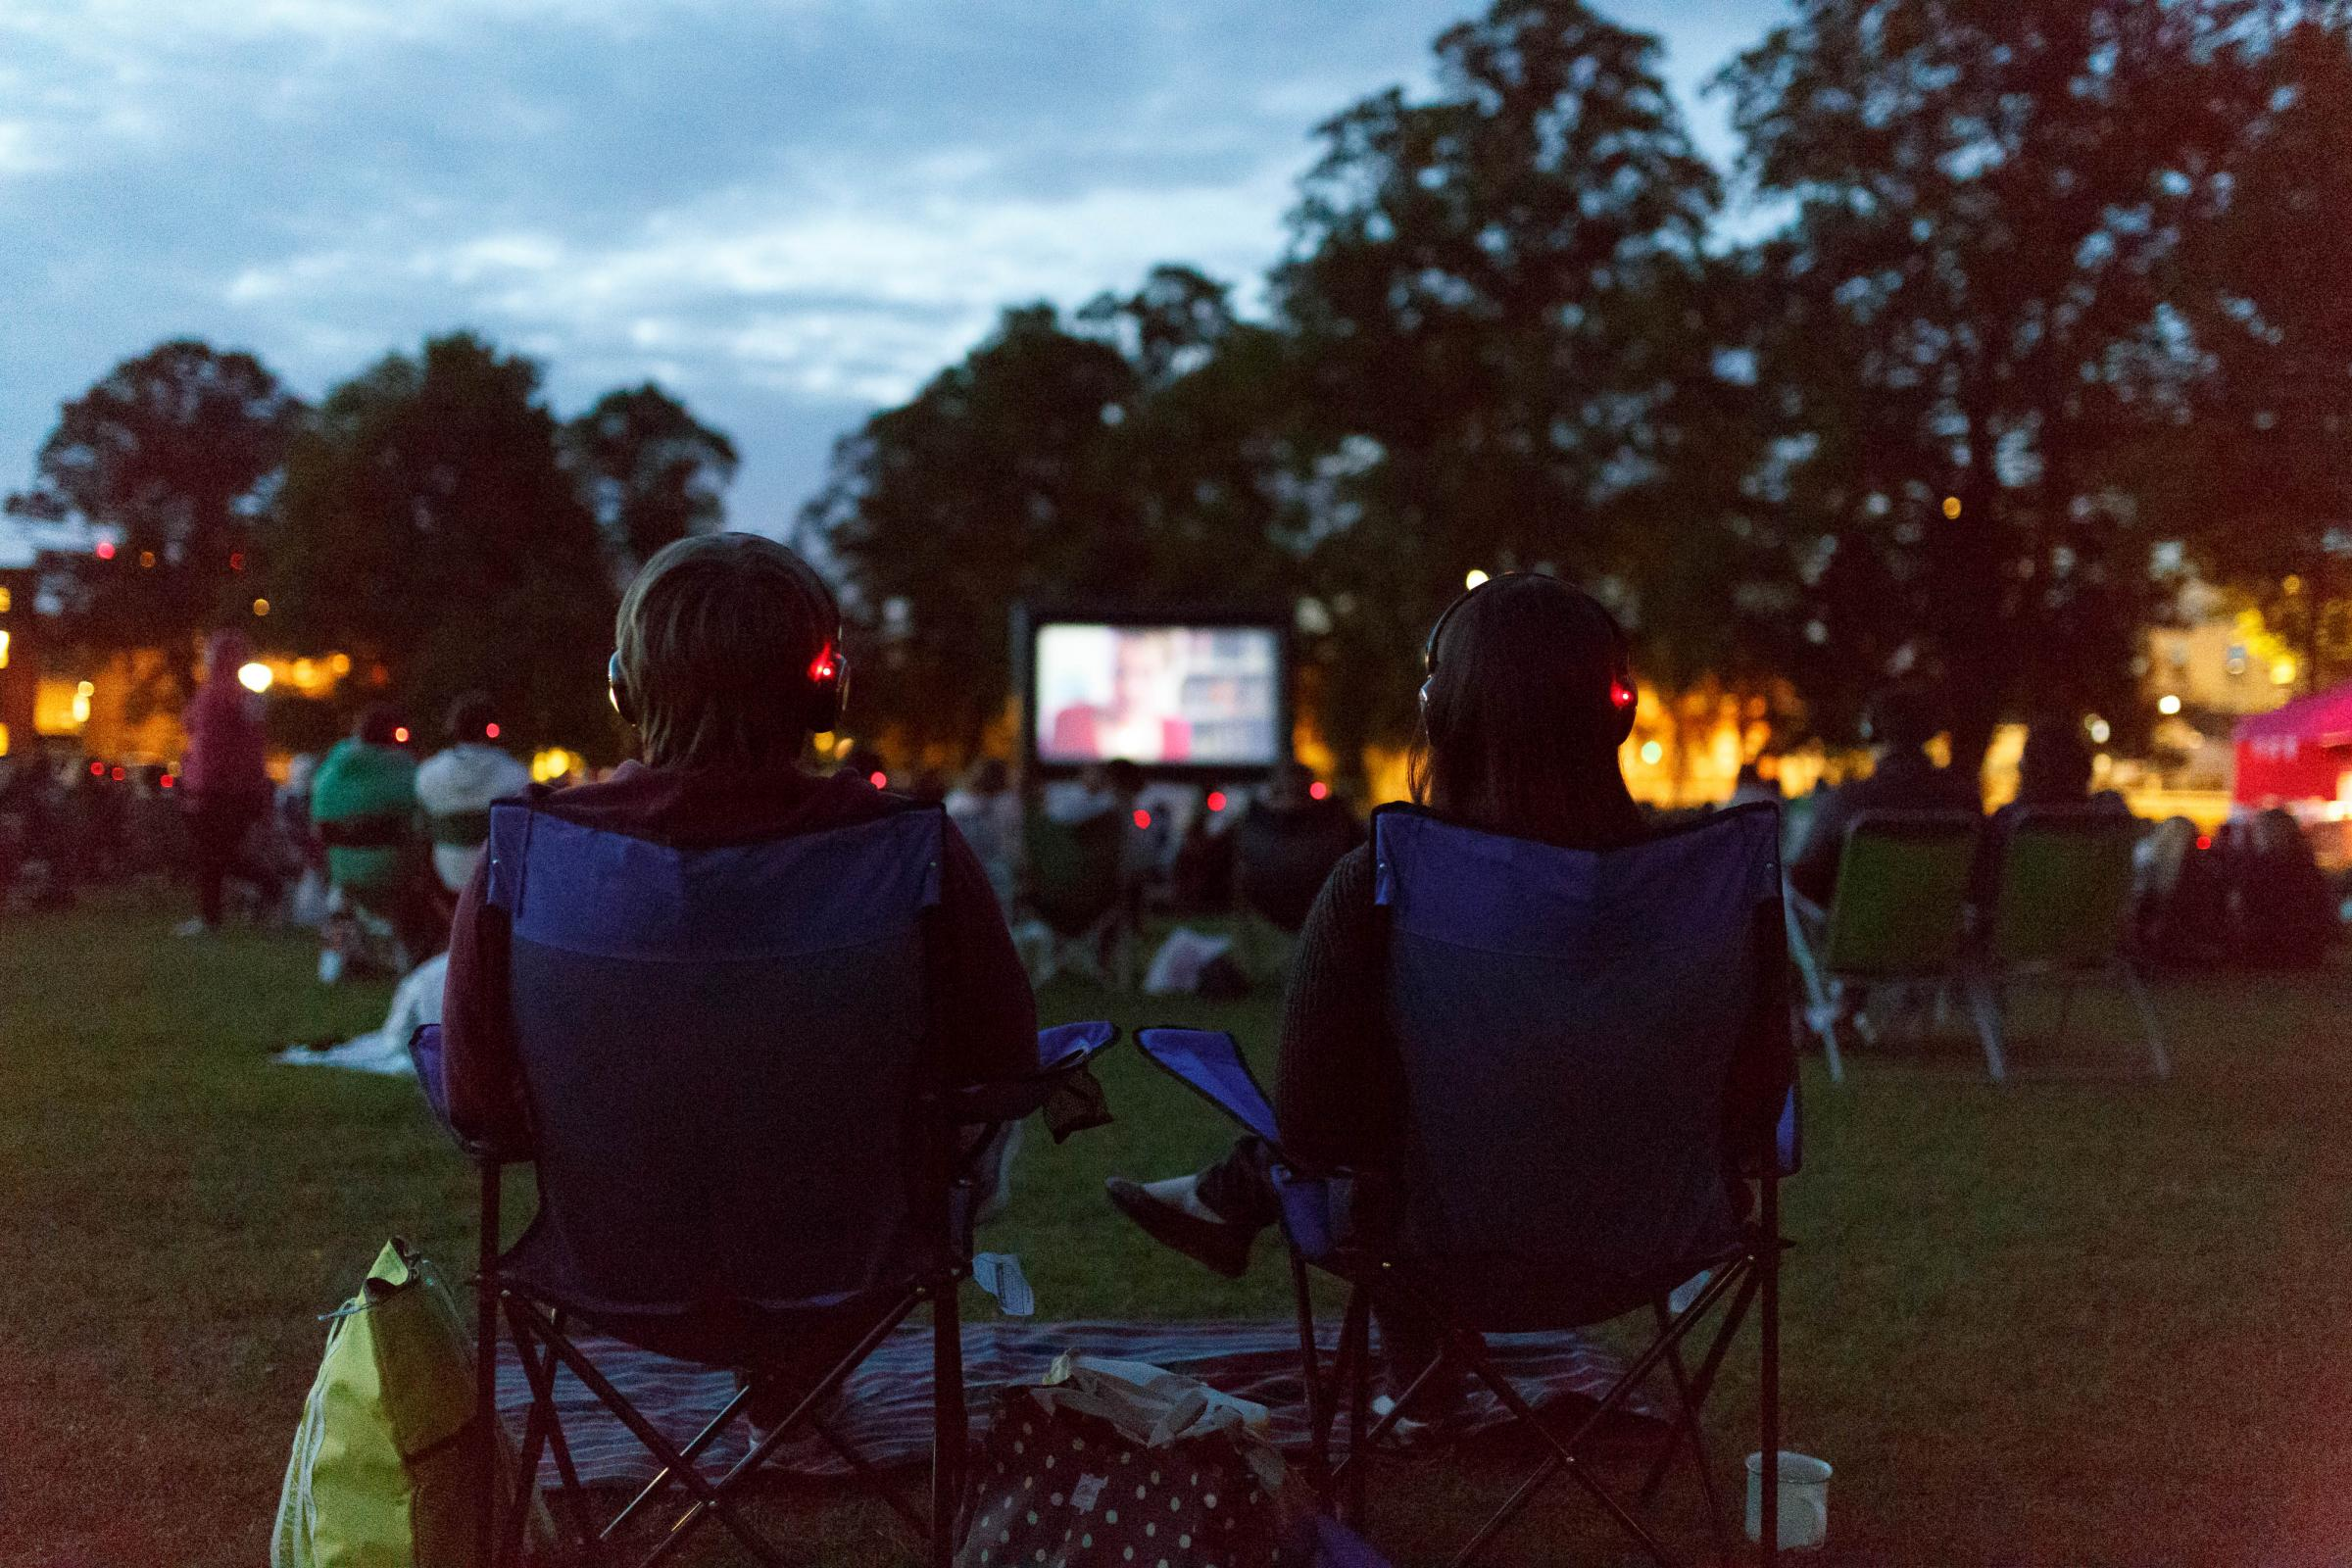 Outdoor Cinema // 10 Things I Hate About You